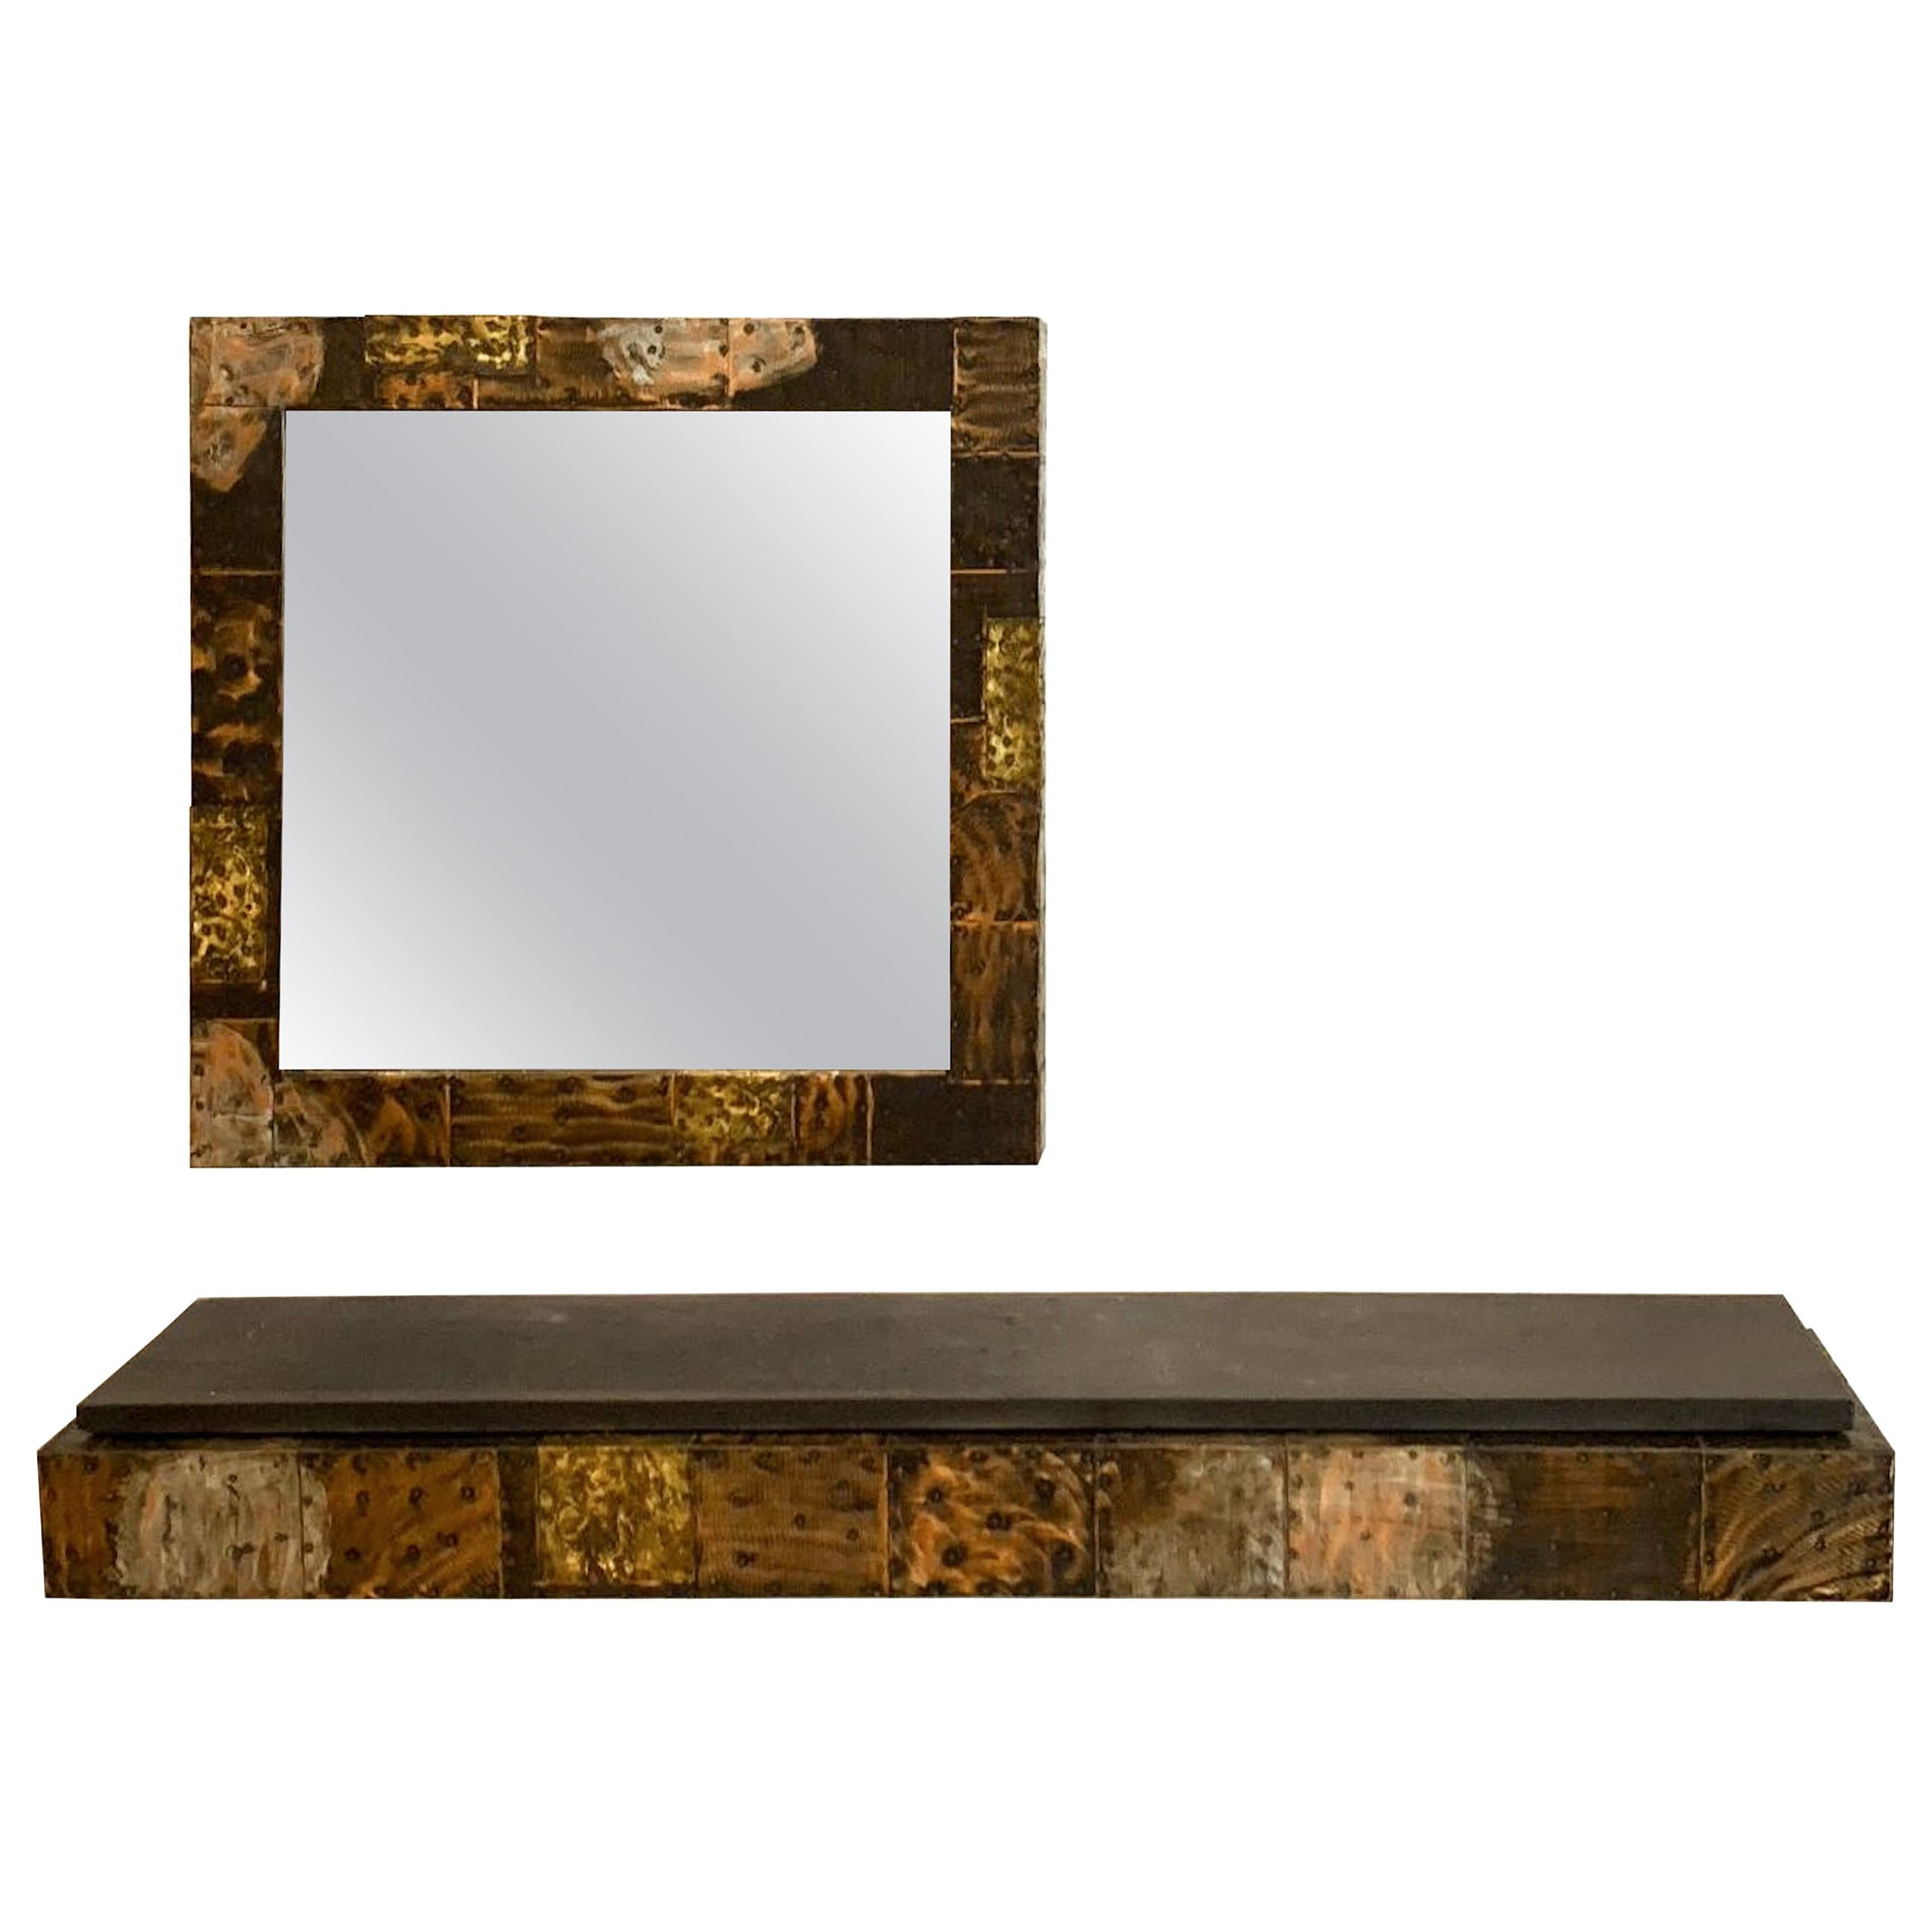 Paul Evans for Directional, Patchwork Mirror and Console